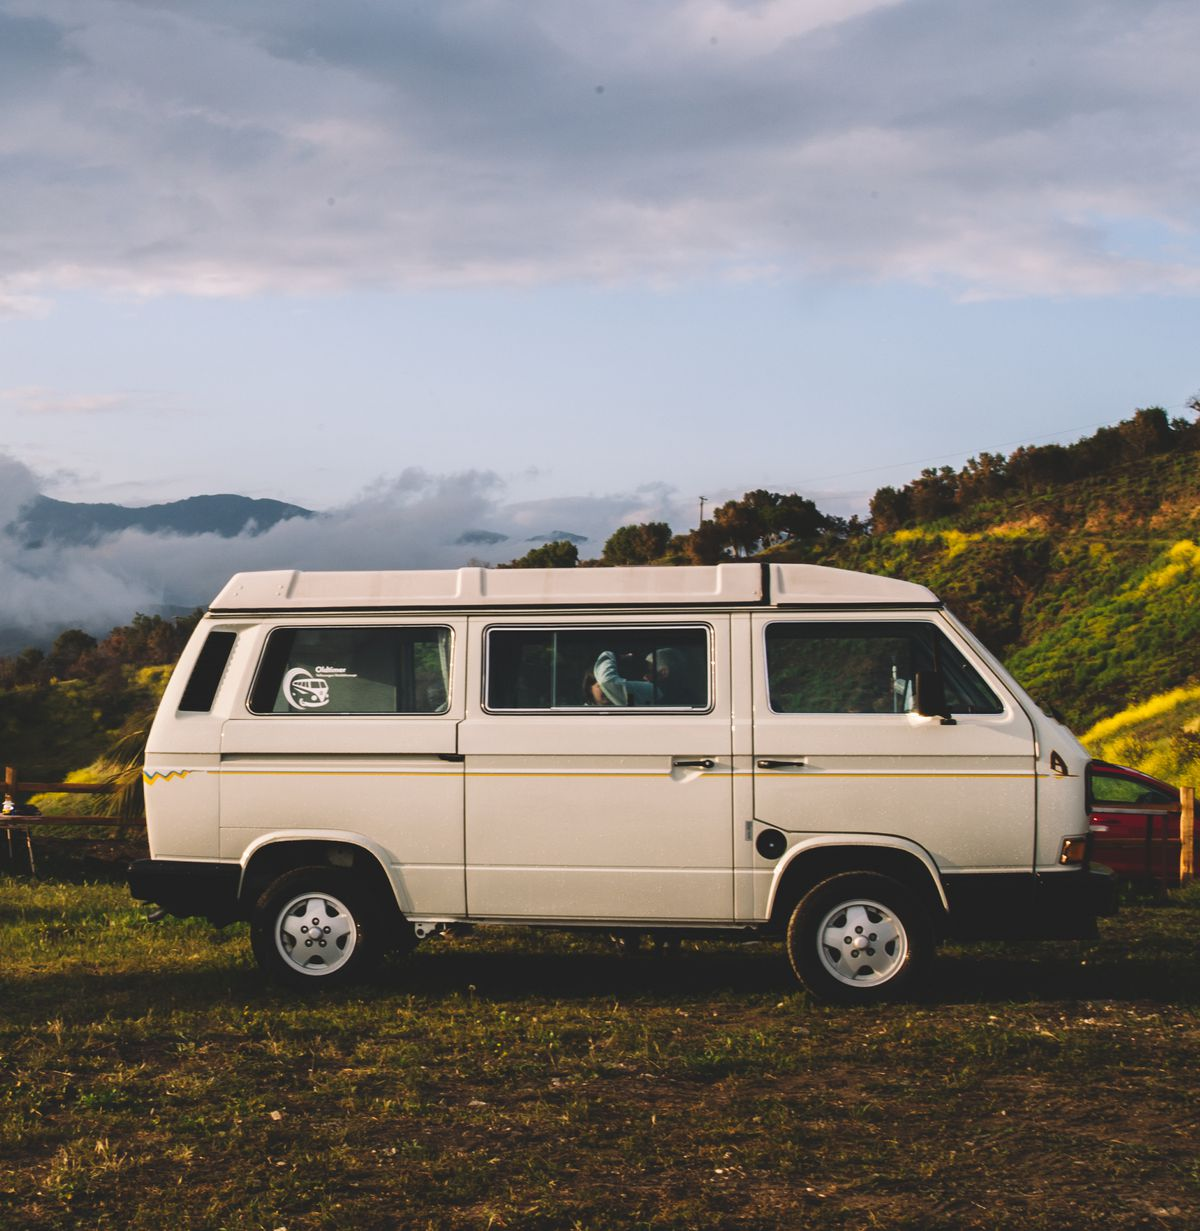 The Original California Camper Van From Volkswagen Debuted In 1988 Photo By Lucy Beaugard